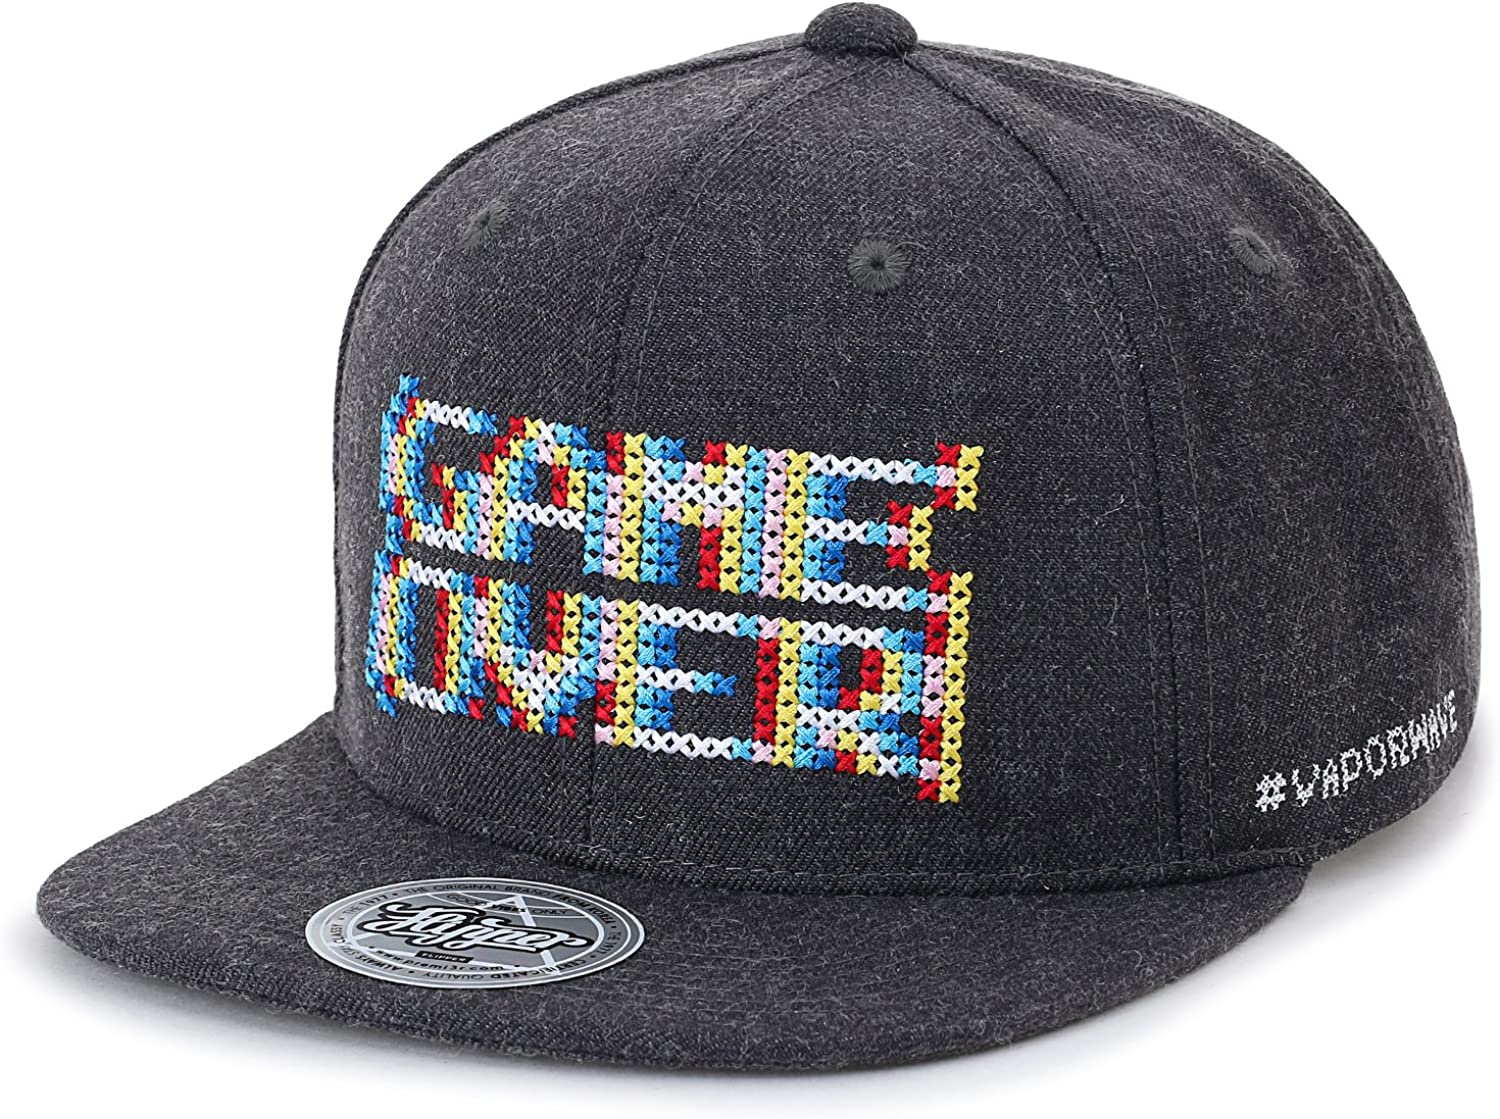 ililily Game Over Embroidery Vintage Baseball Cap Flat Bill Trucker Hat